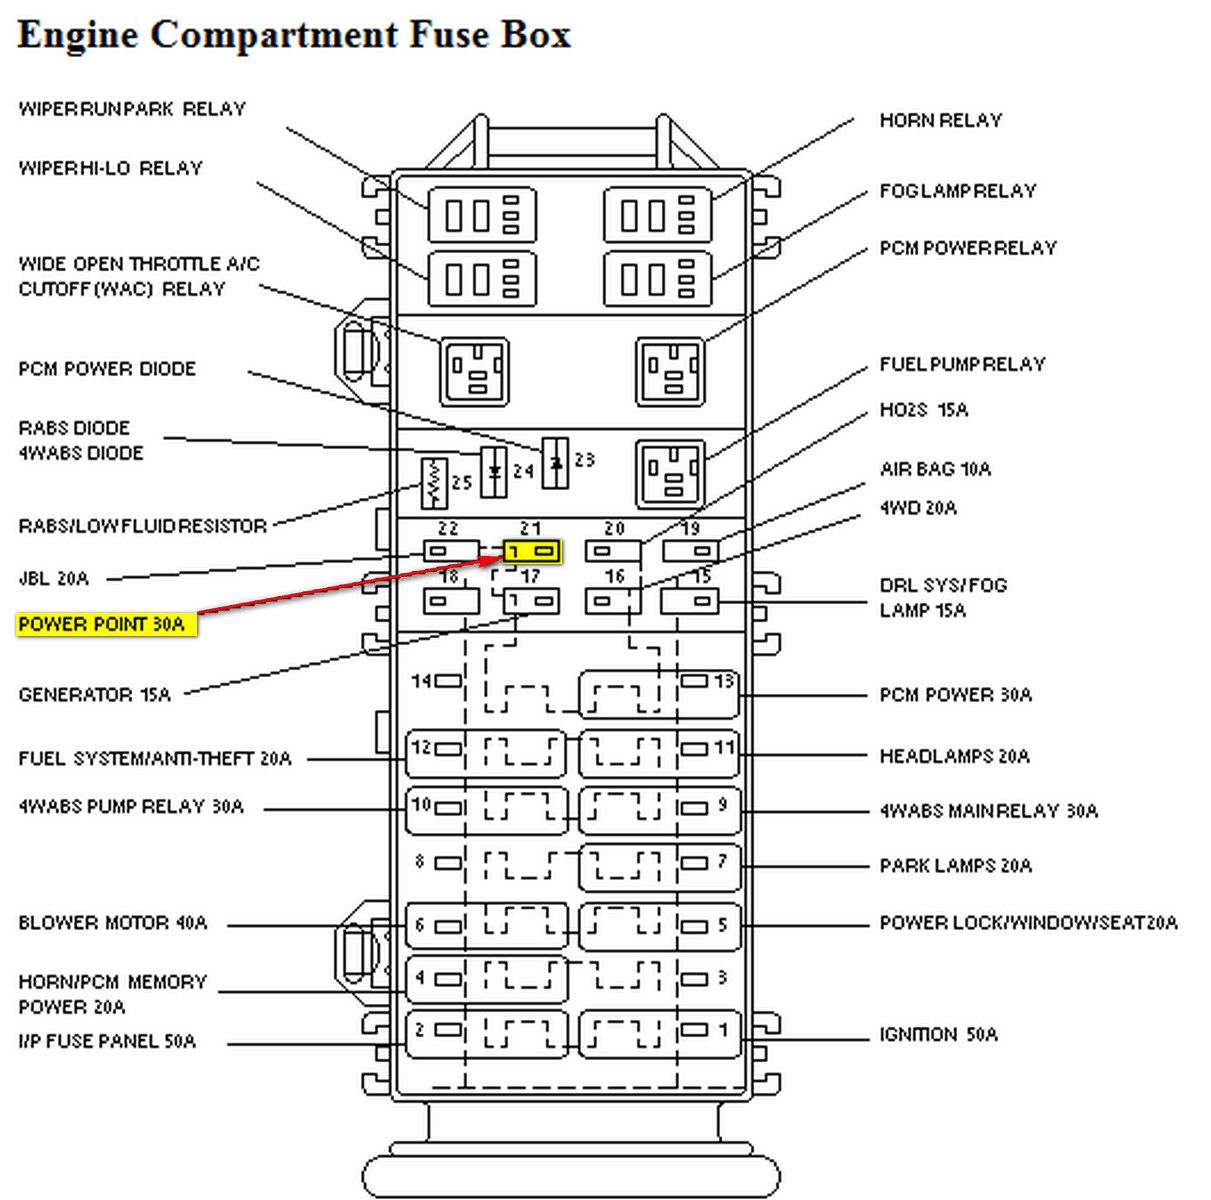 2002 ford ranger fuse diagram | 1997 ford ranger fuse box diagram